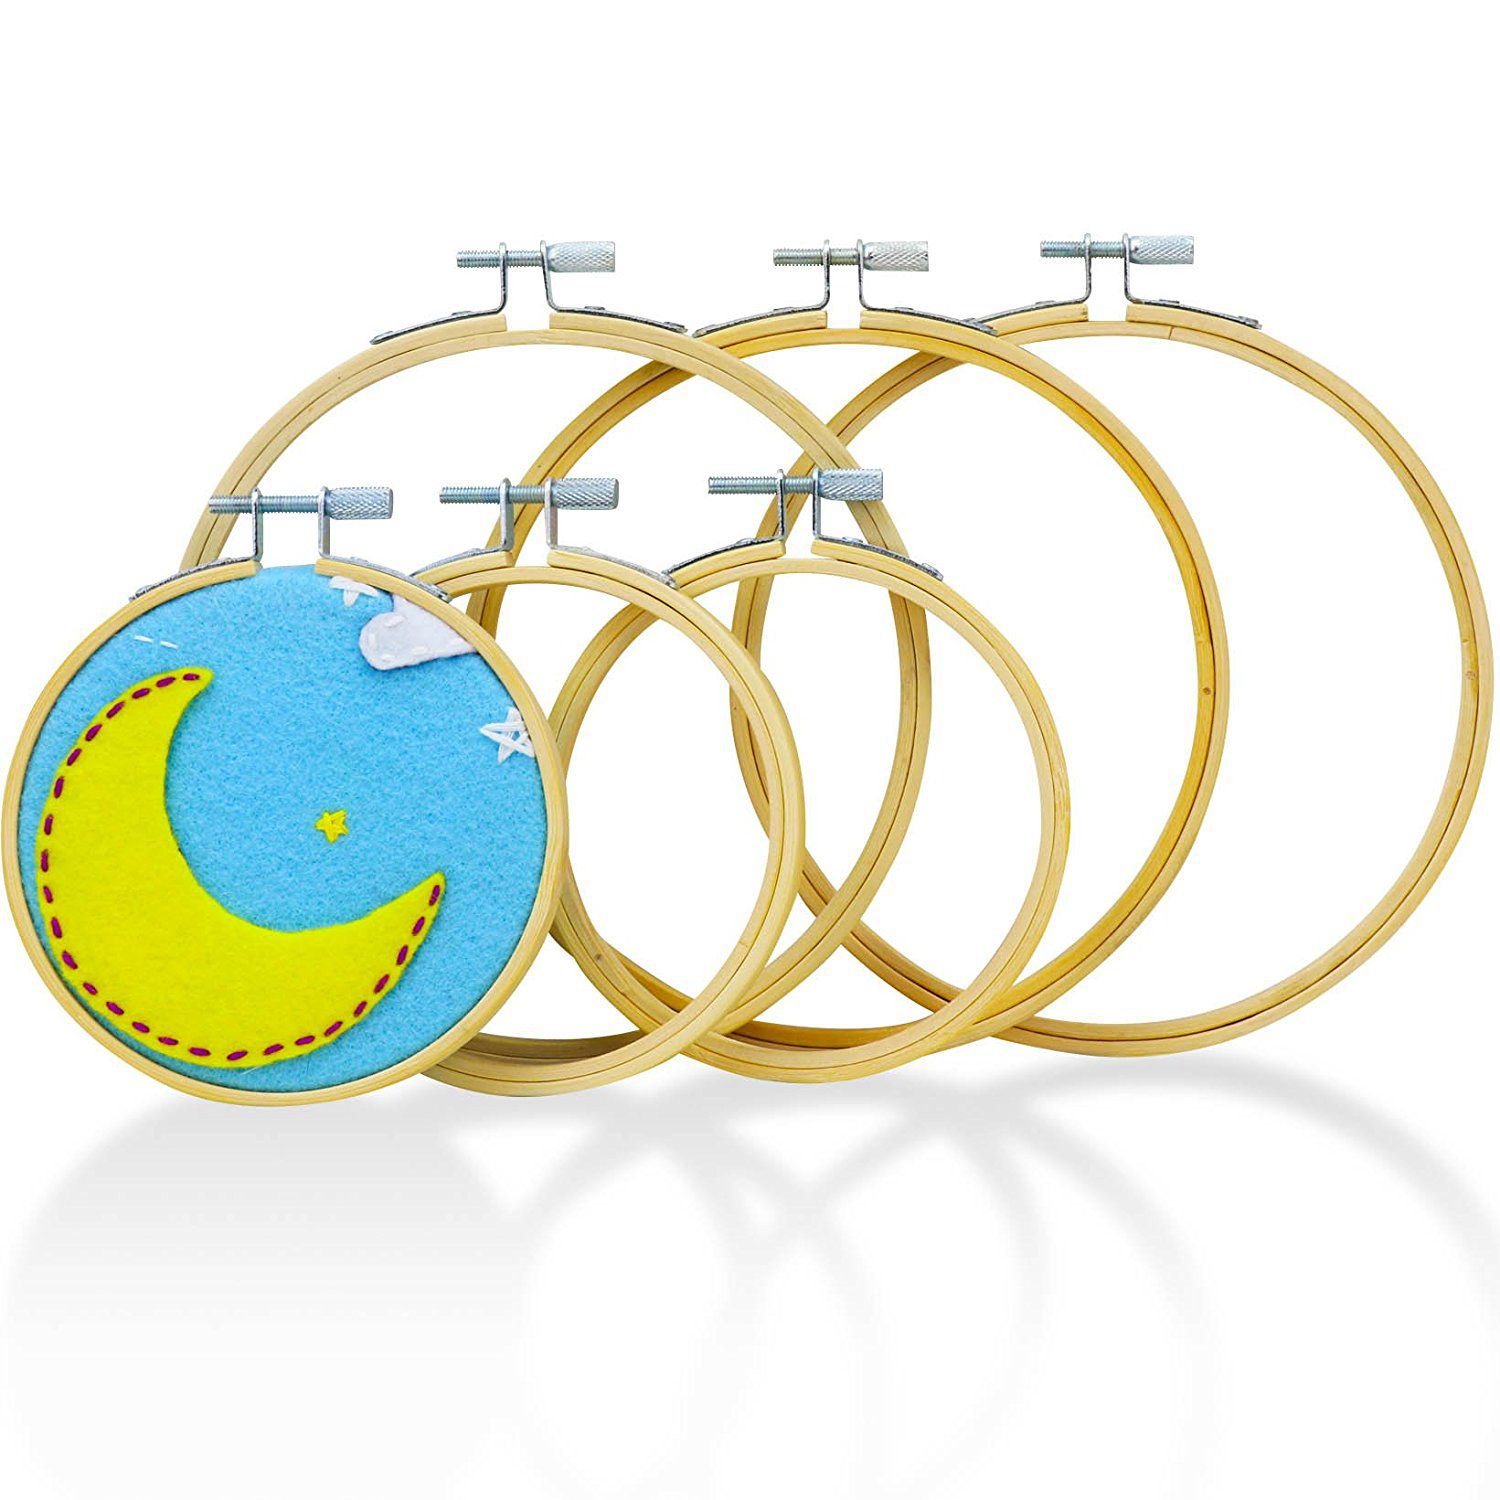 Embroidery Hoops For Cross Stitch 6 Pack Premium Round Bamboo Hoop